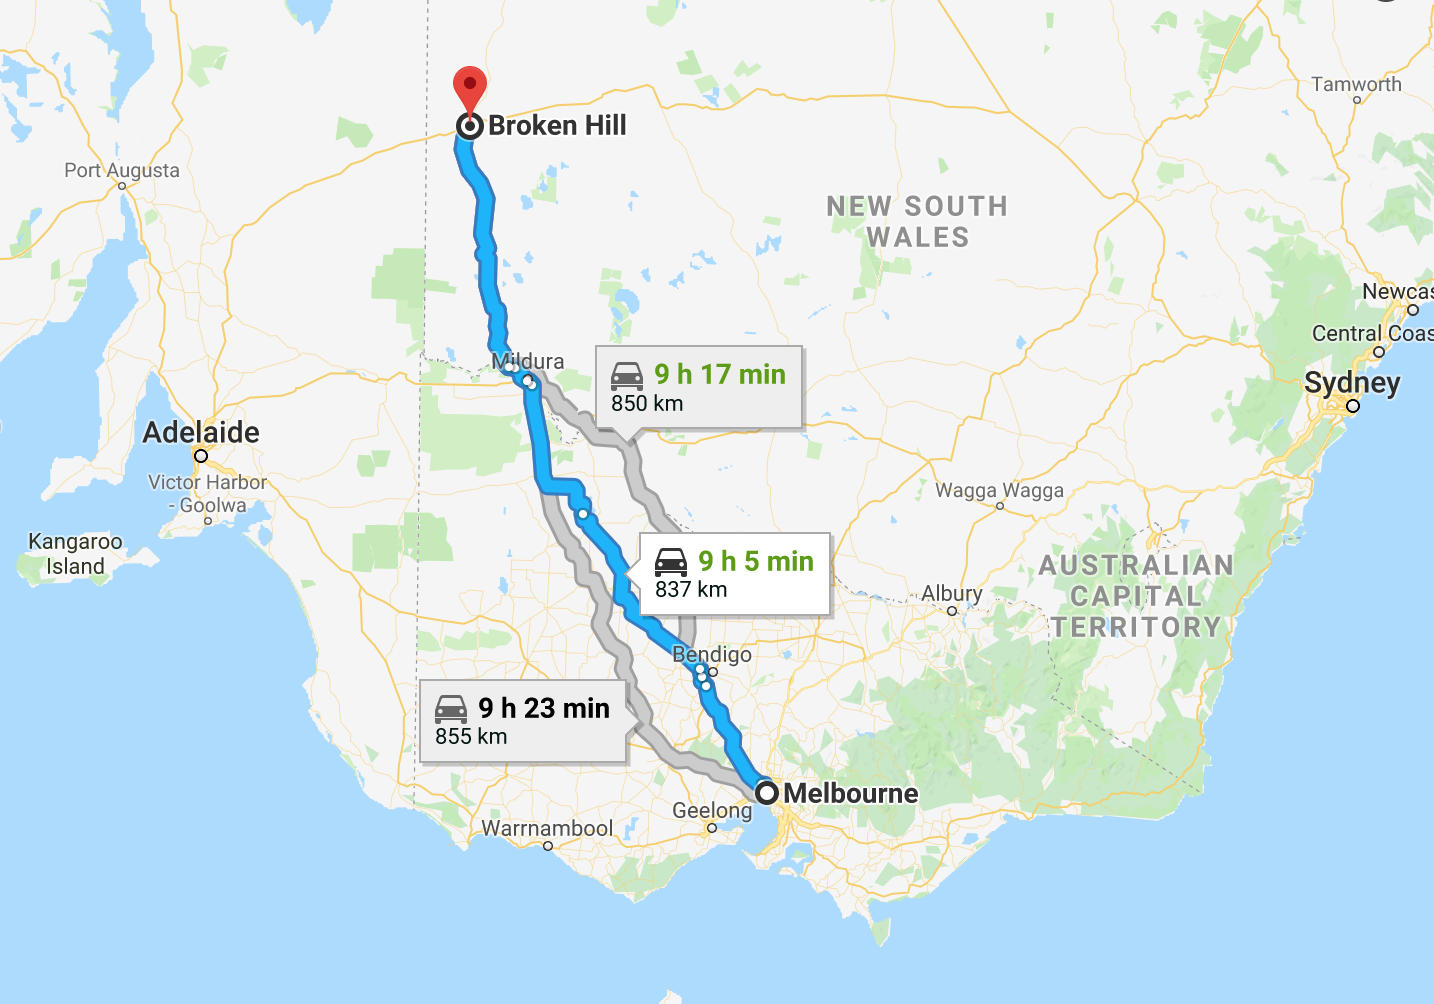 Melbourne To Broken Hill